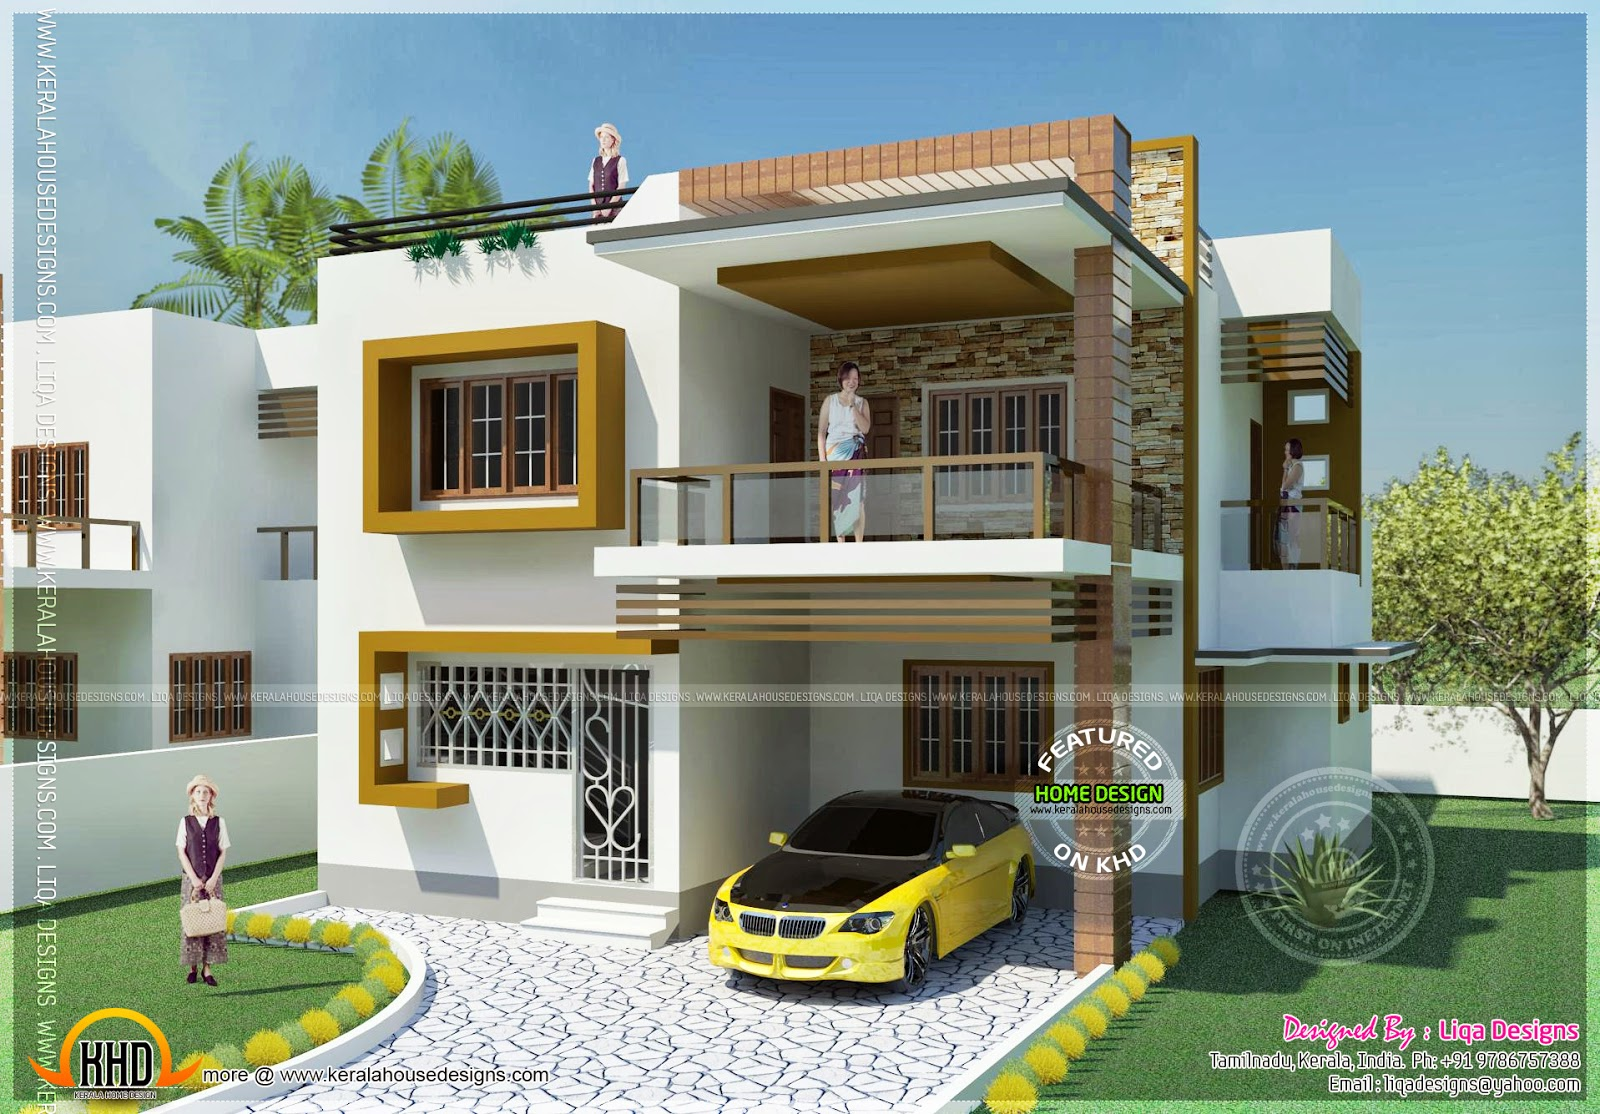 Double storied tamilnadu house design kerala home design for Home models in tamilnadu pictures